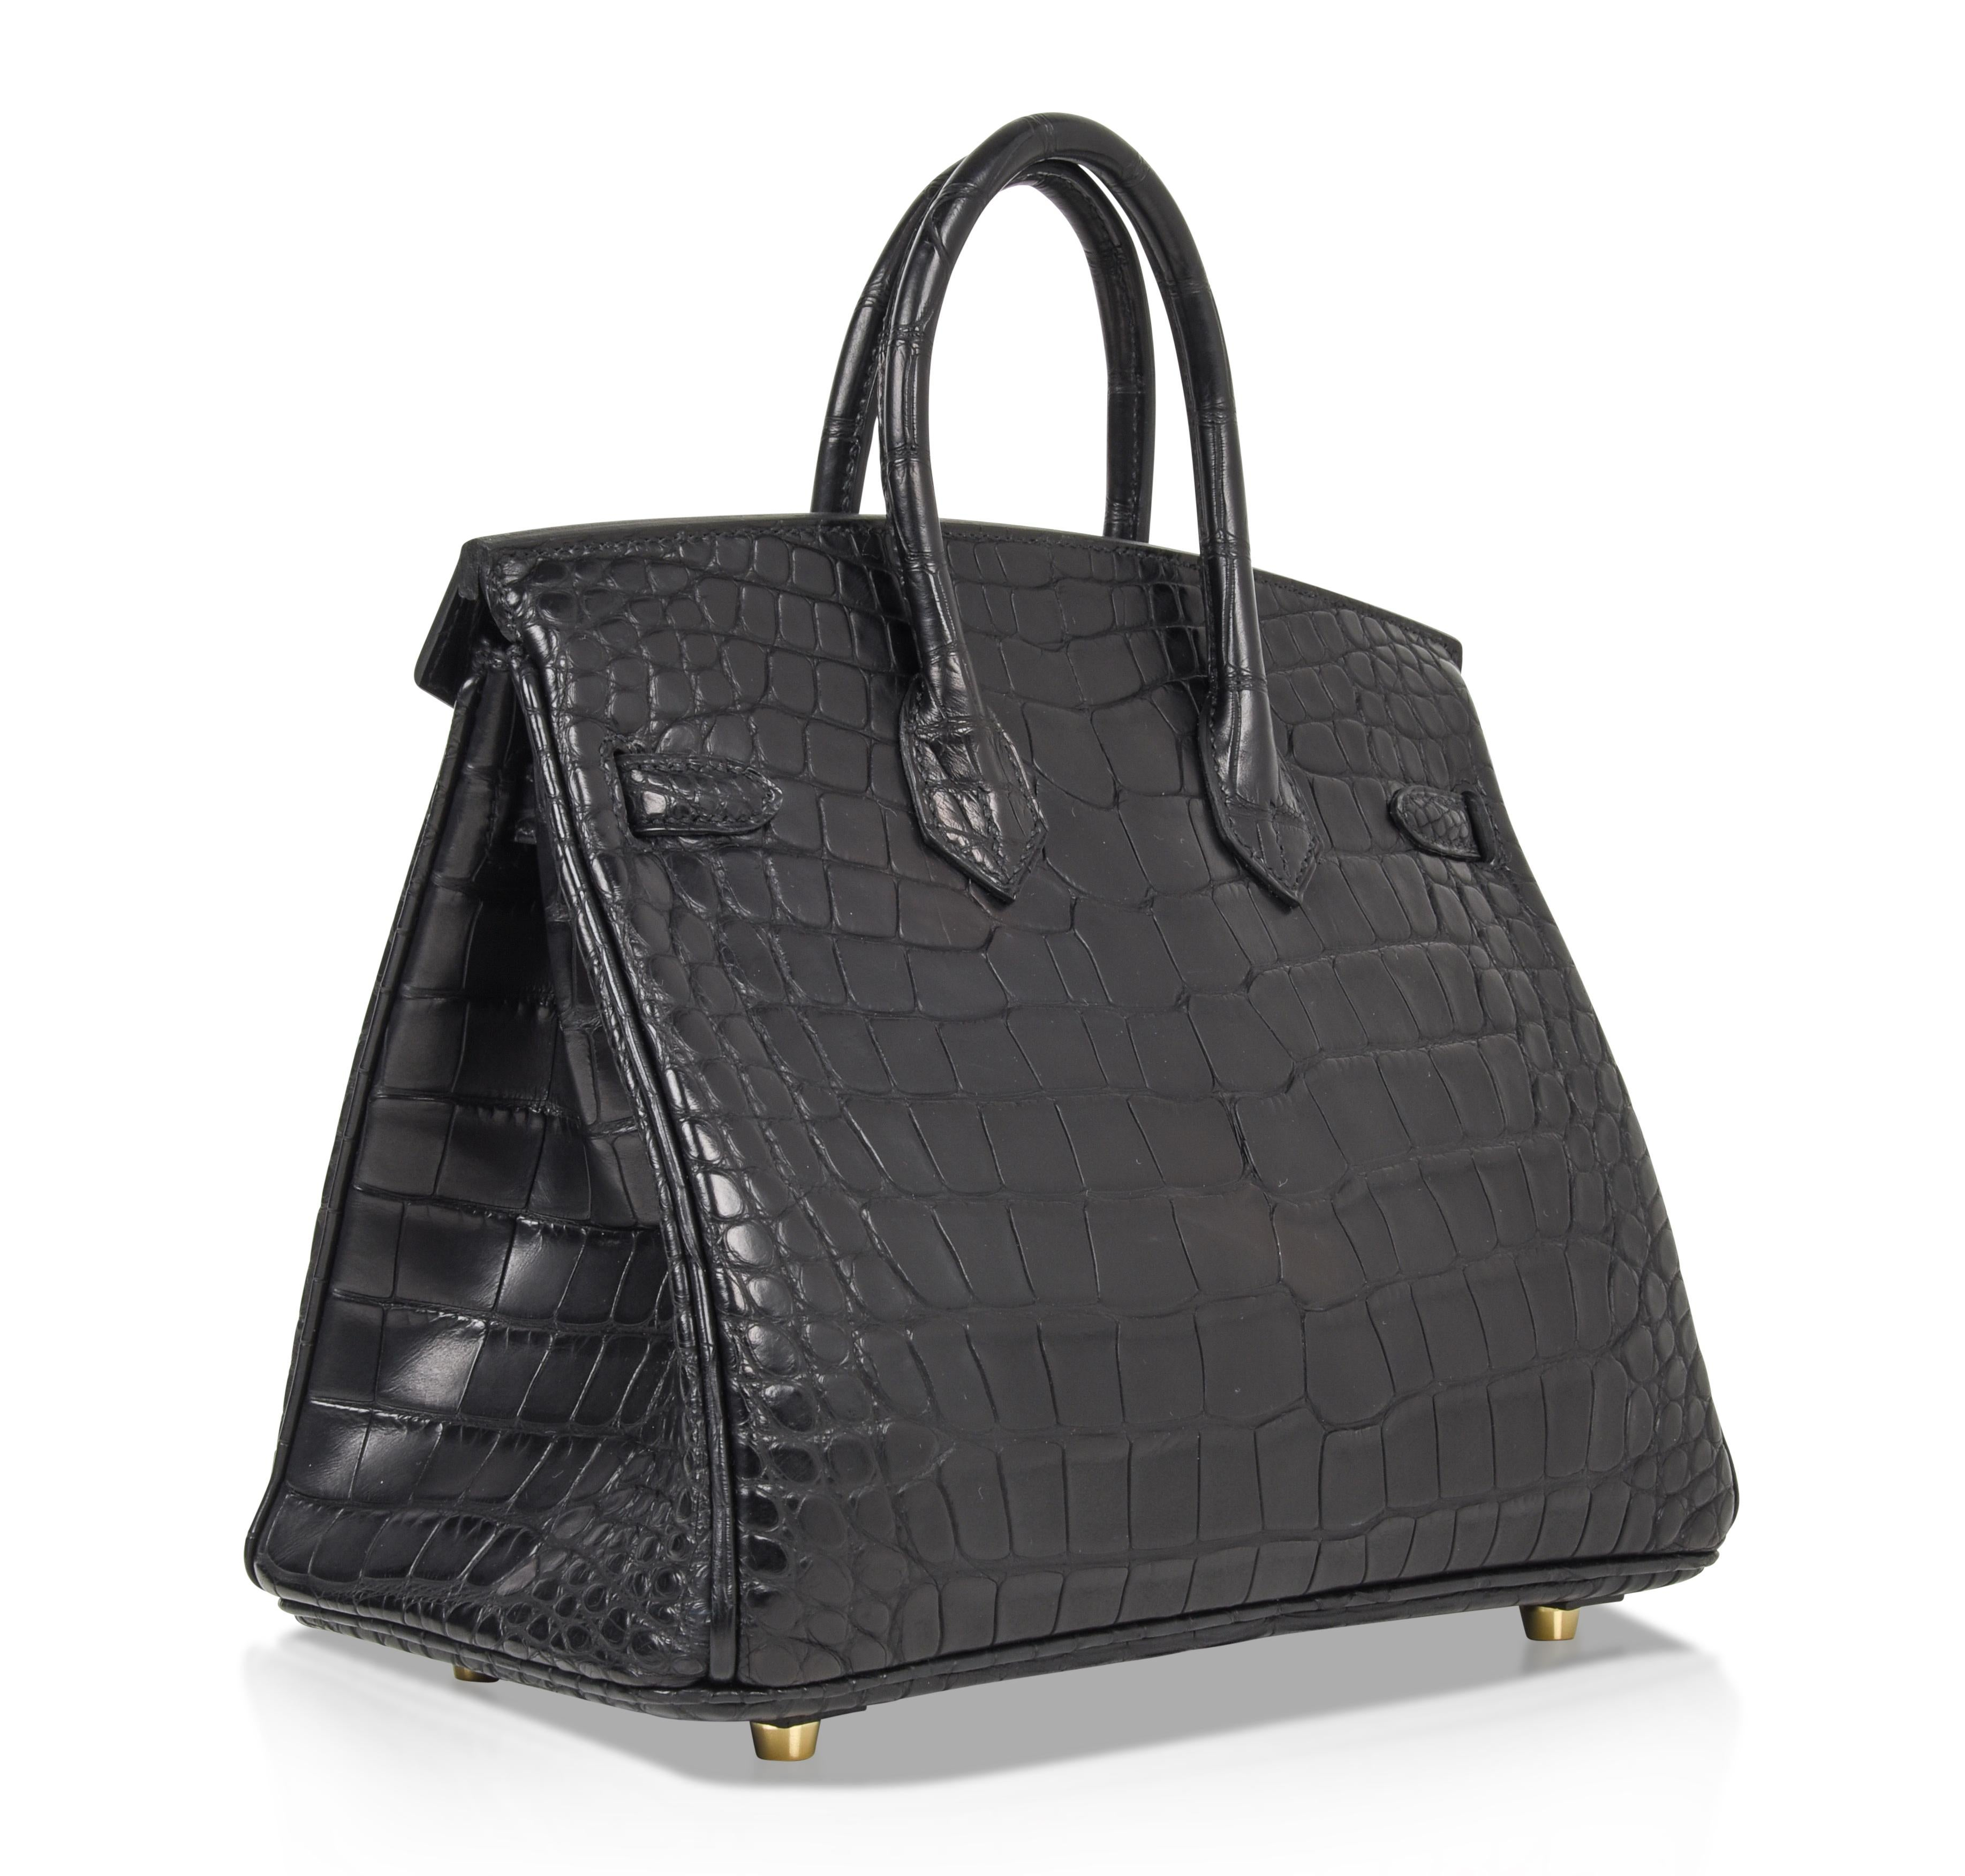 Hermes Birkin 25 Bag Matte Black Alligator Gold Hardware For Sale at 1stdibs a89c7d320829a